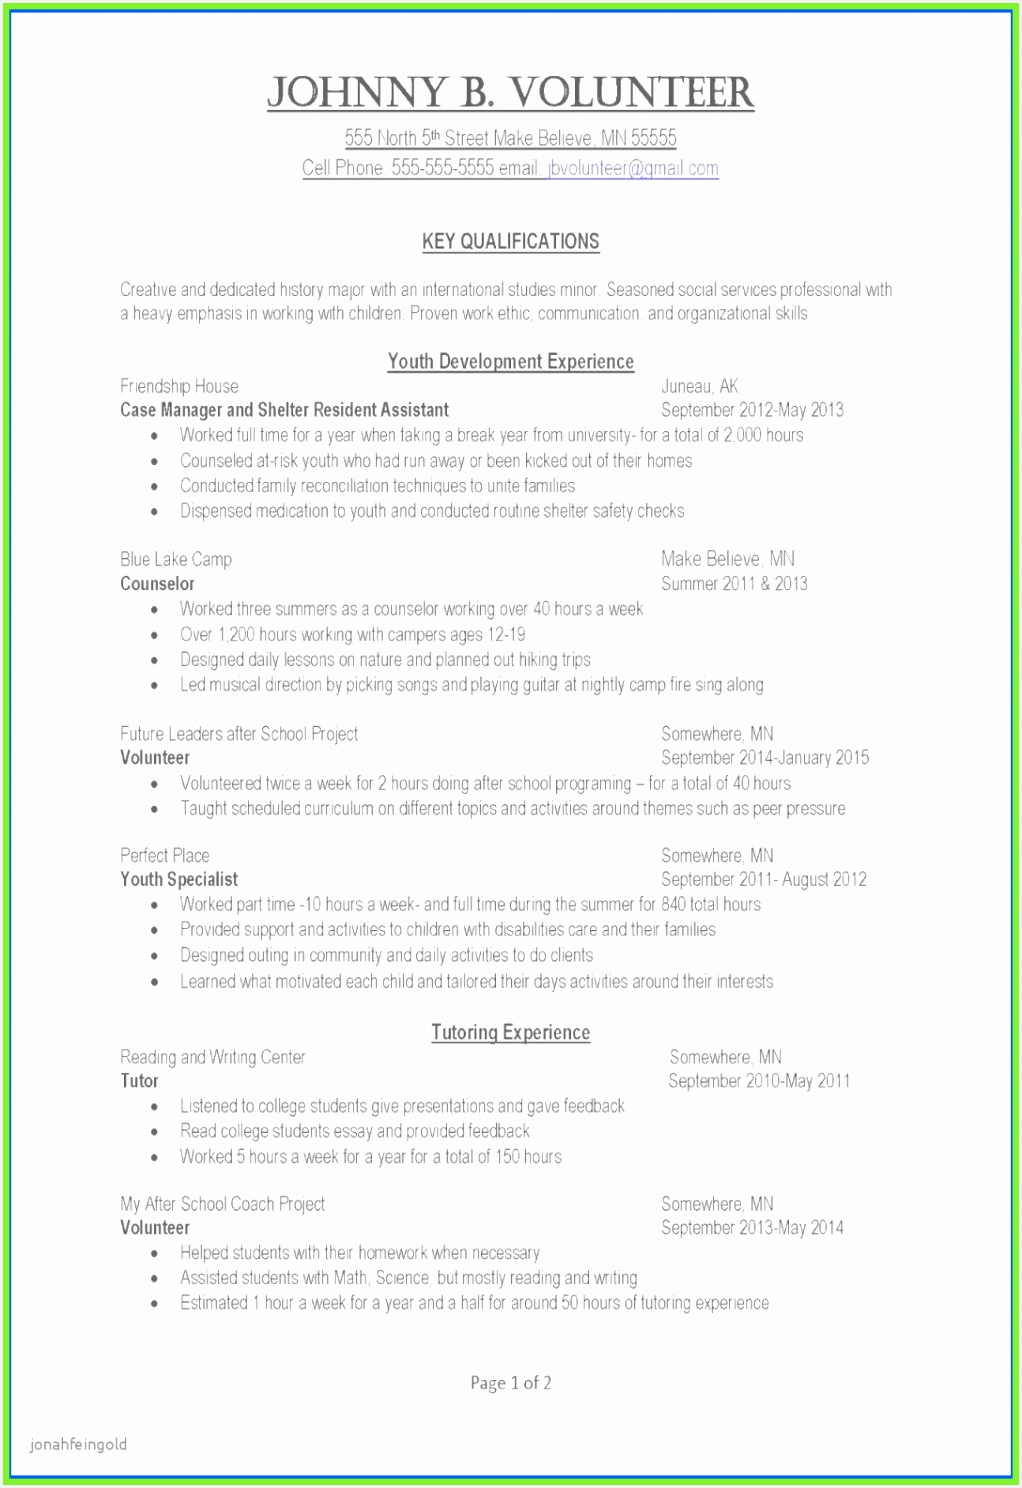 International social Worker Sample Resume Bnede Beautiful 16 Inspirational Student Cover Letter Template Of International social Worker Sample Resume Gbwea Best Of social Work Resumes Elegant Resume Paper Sample Tickets Templates 13